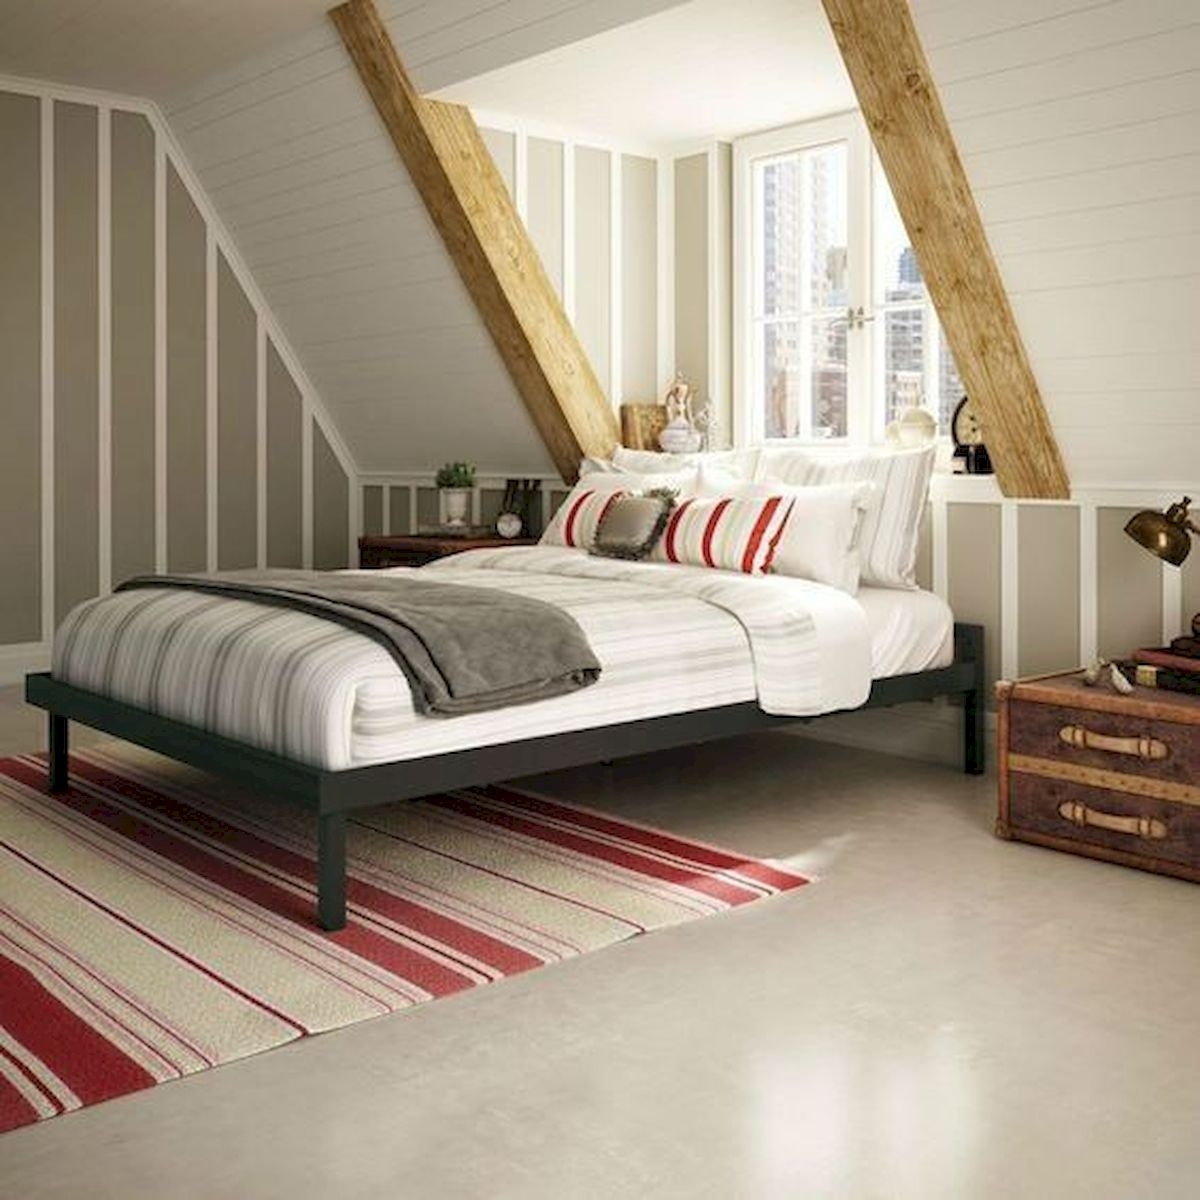 40 Awesome Attic Bedroom Design and Decorating Ideas (30)